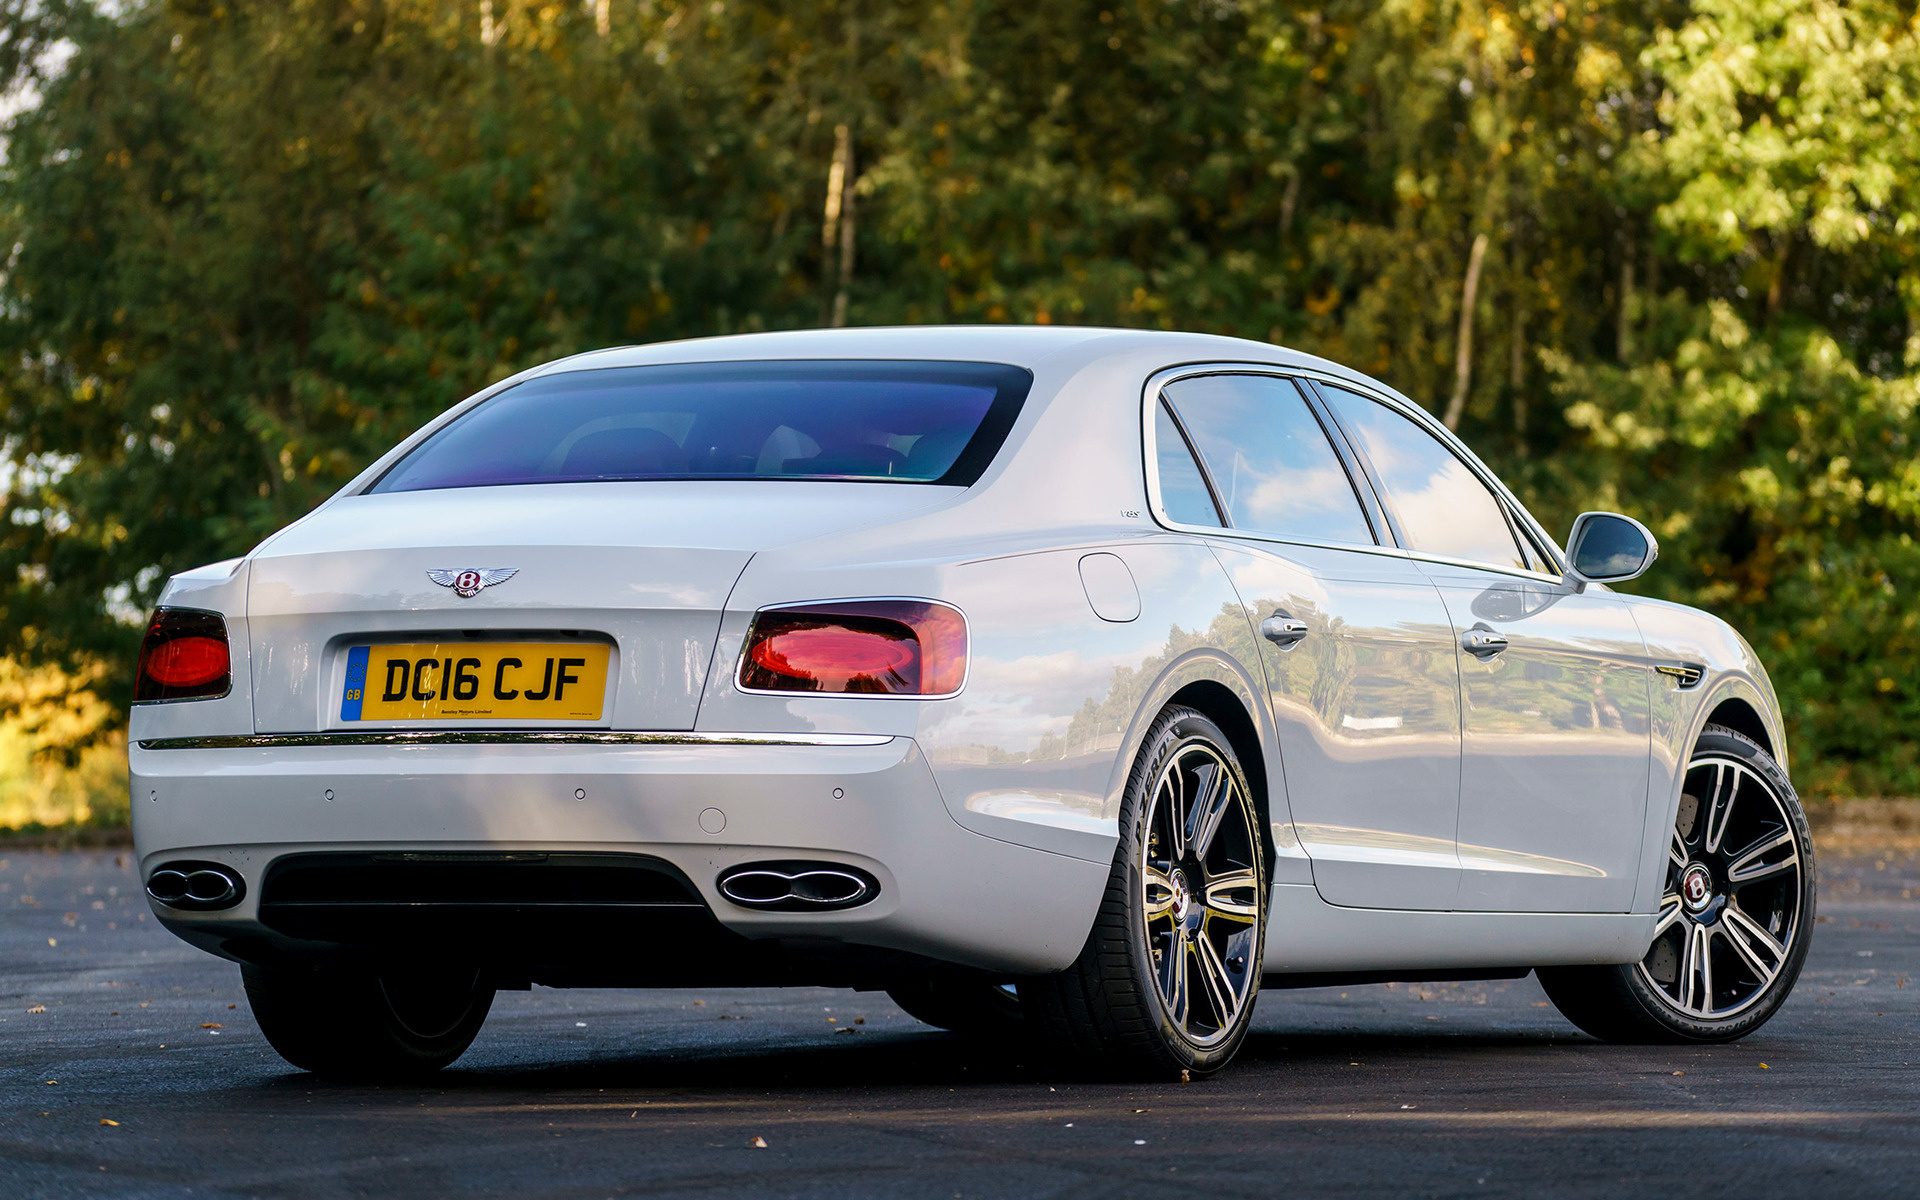 2016 Bentley Flying Spur V8 S UK   Wallpapers and HD Images 1920x1200